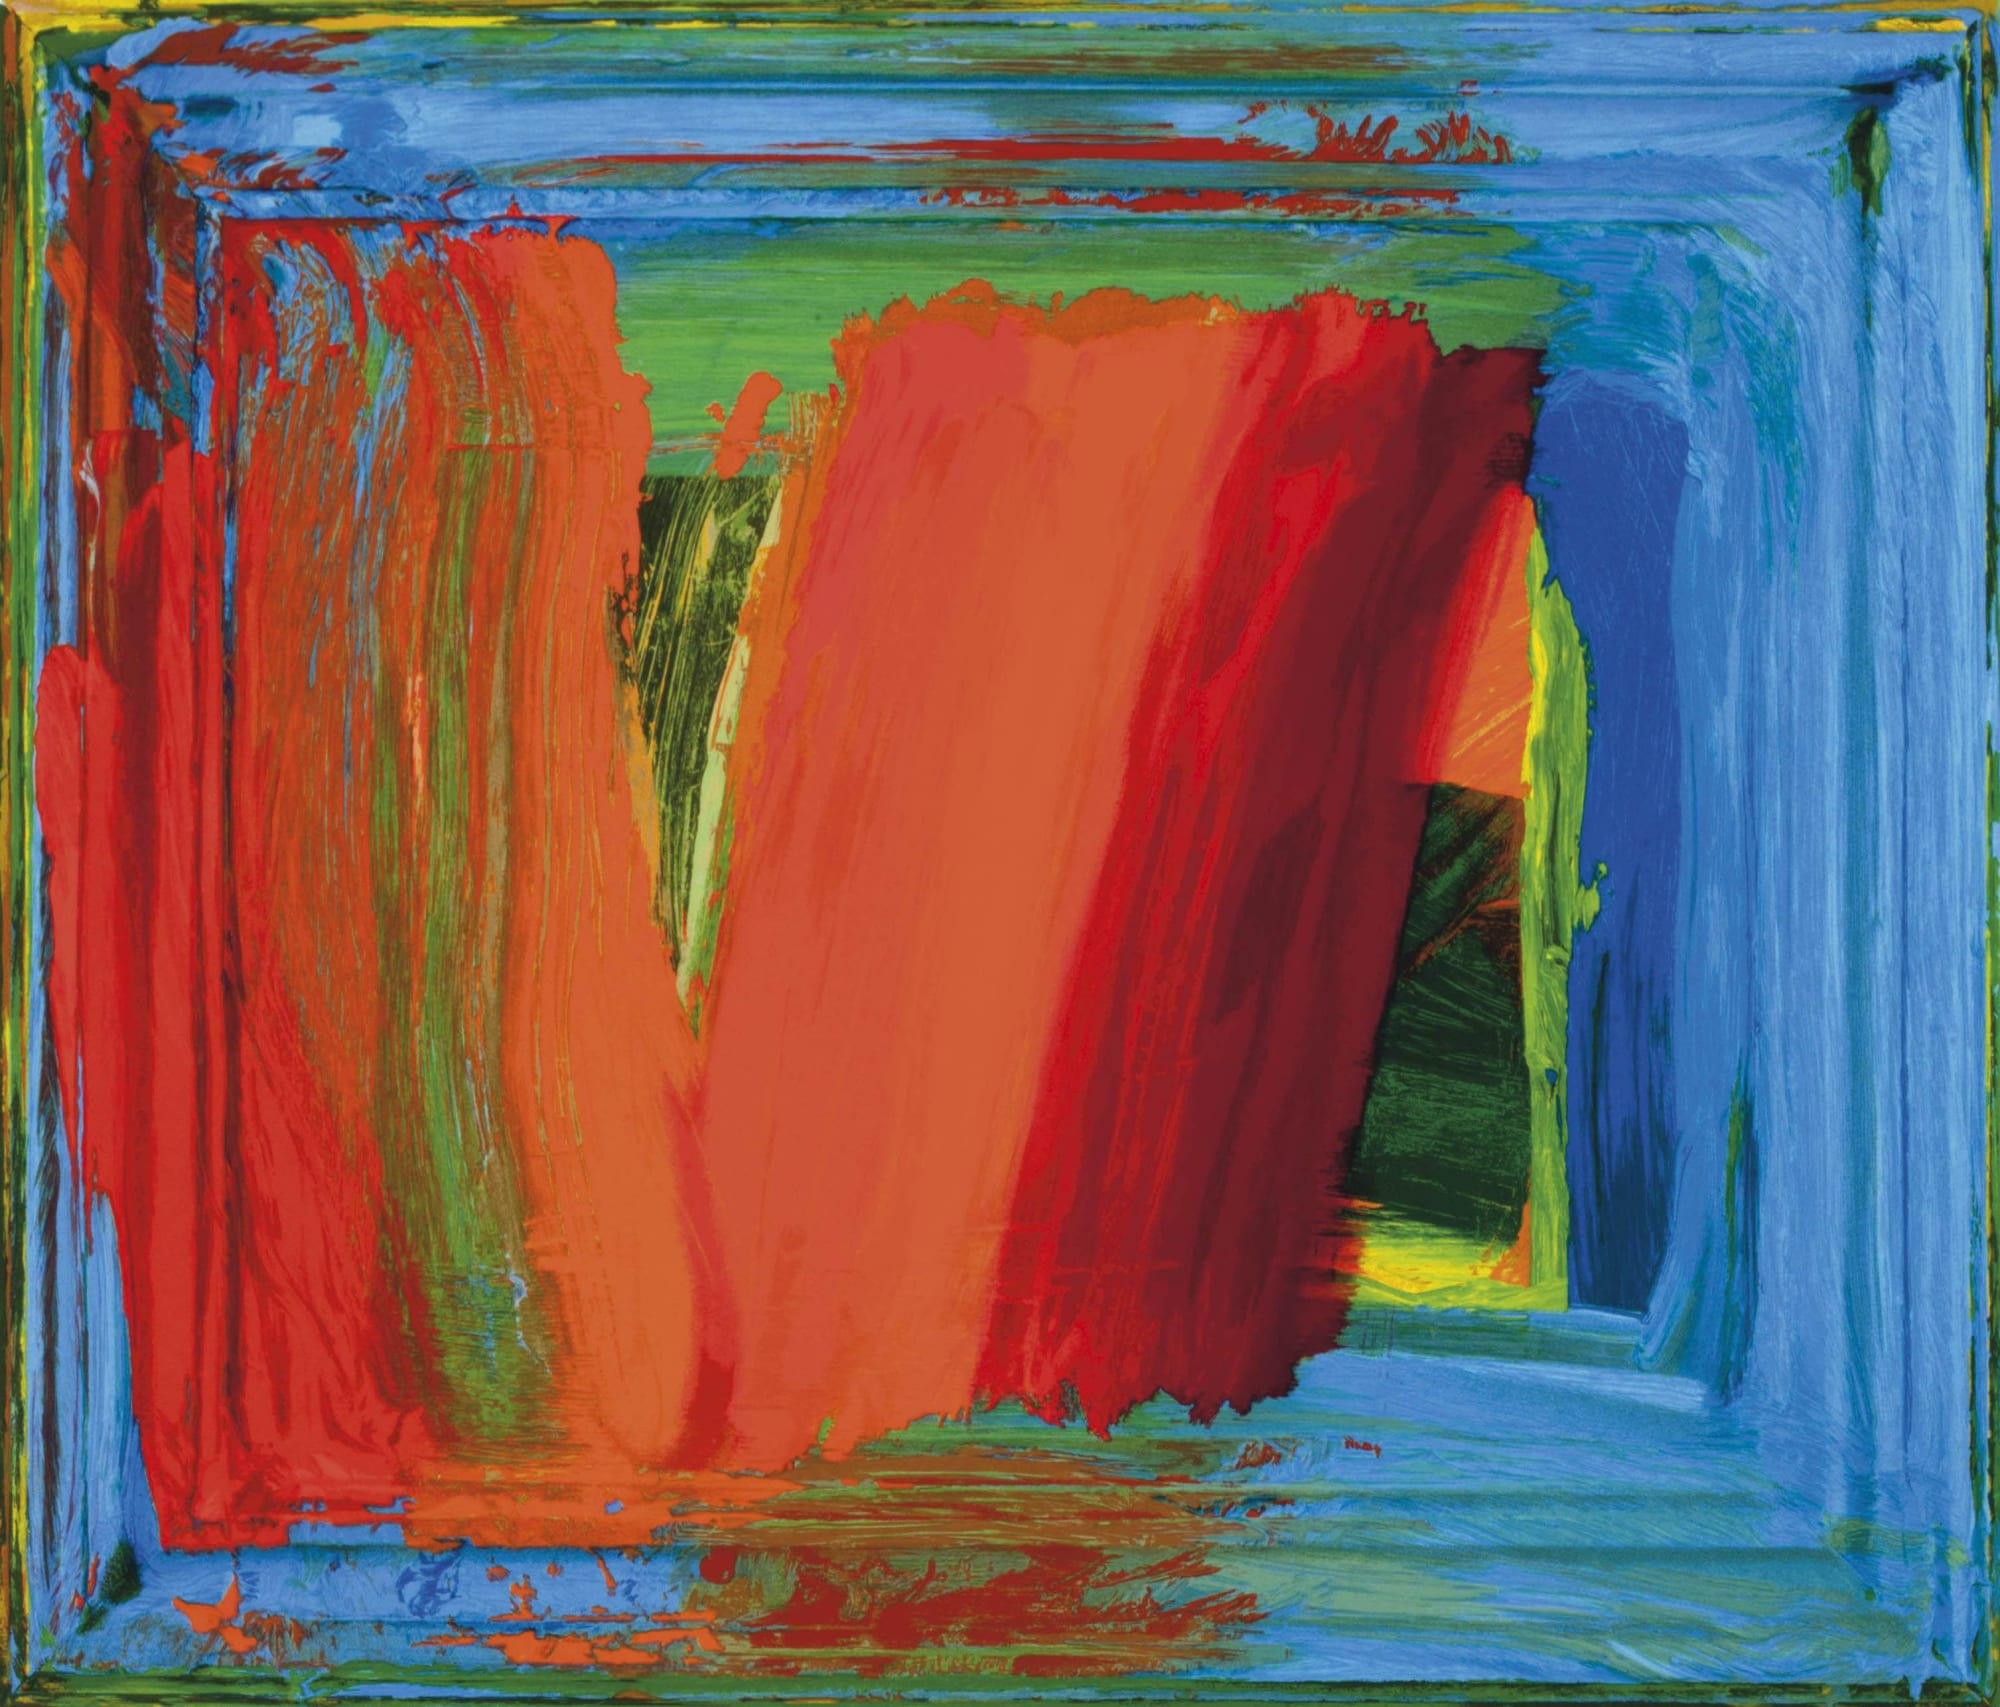 Howard Hodgkin